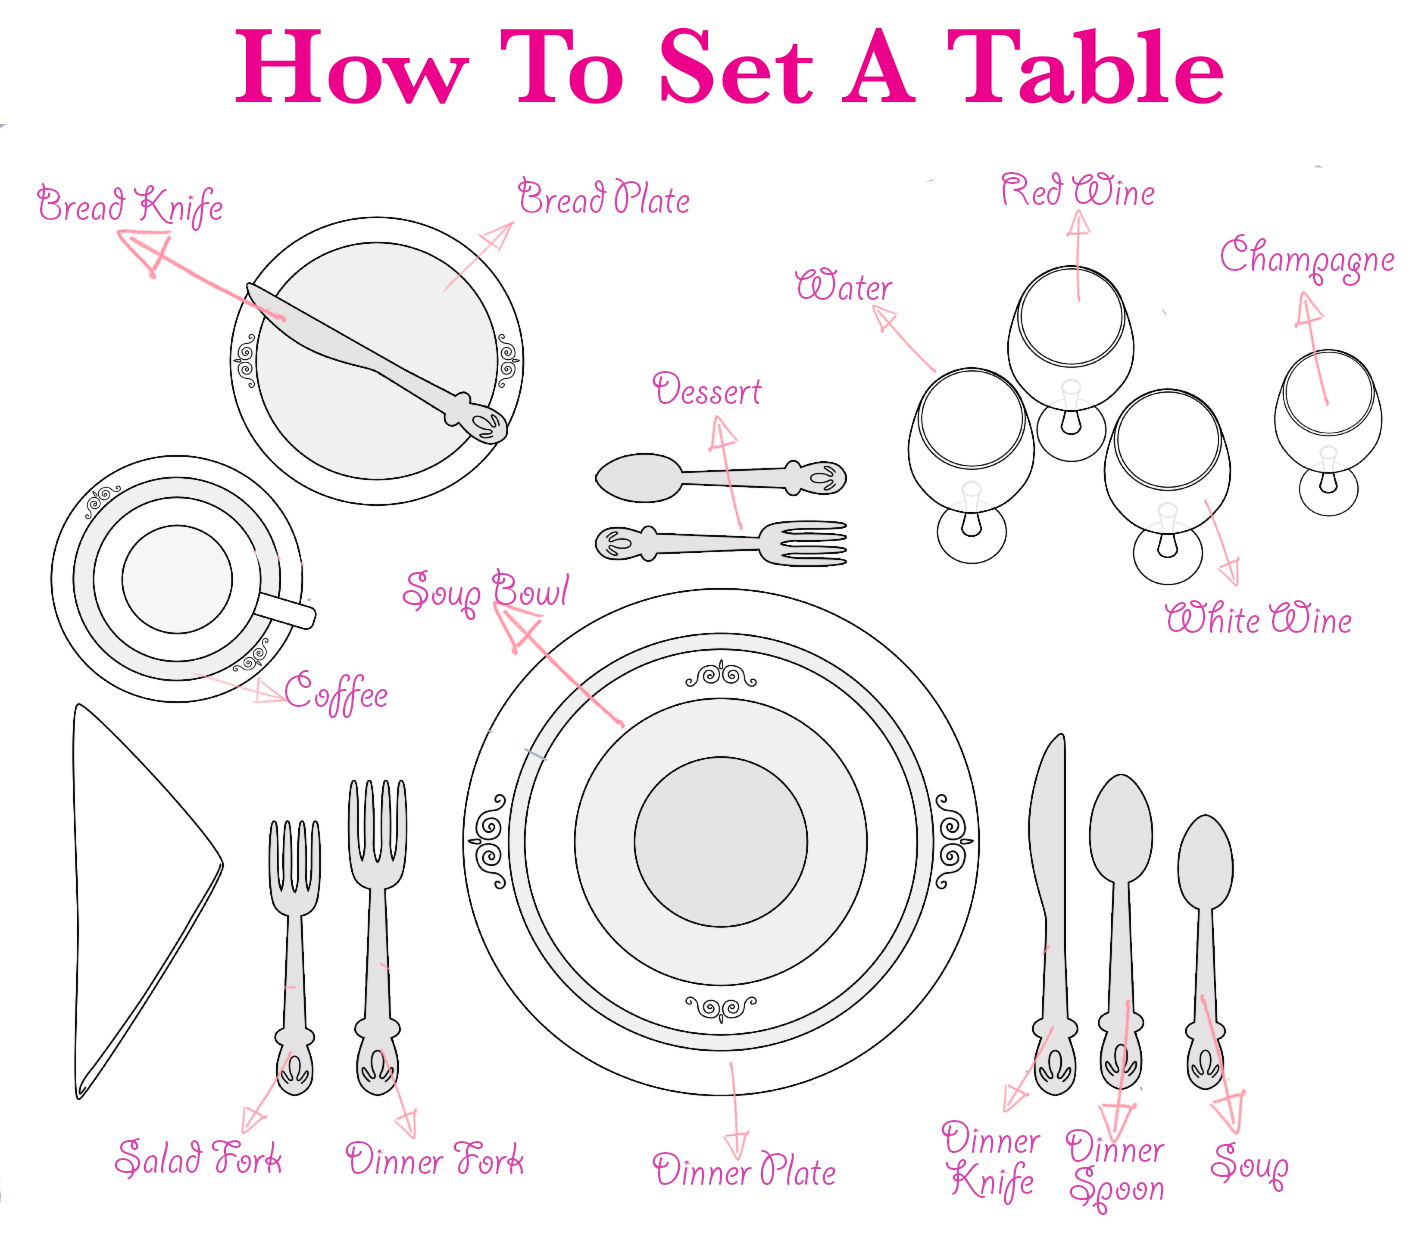 Table Setting 10 gorgeous table setting ideas + how to set your table